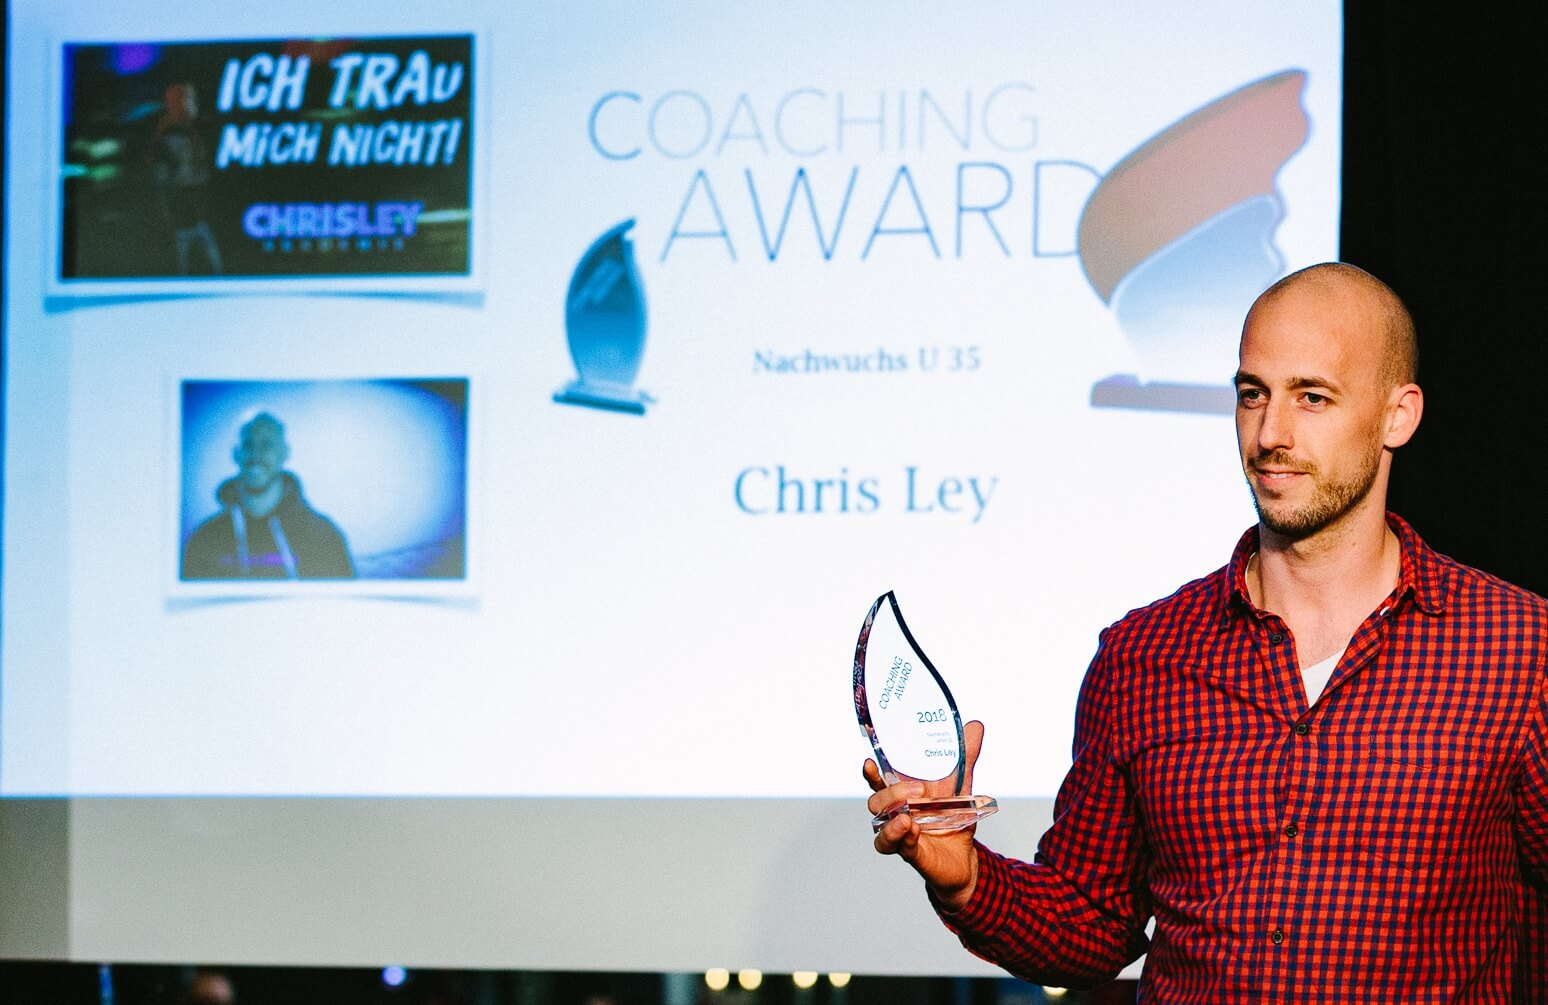 Coaching Award Chris Ley